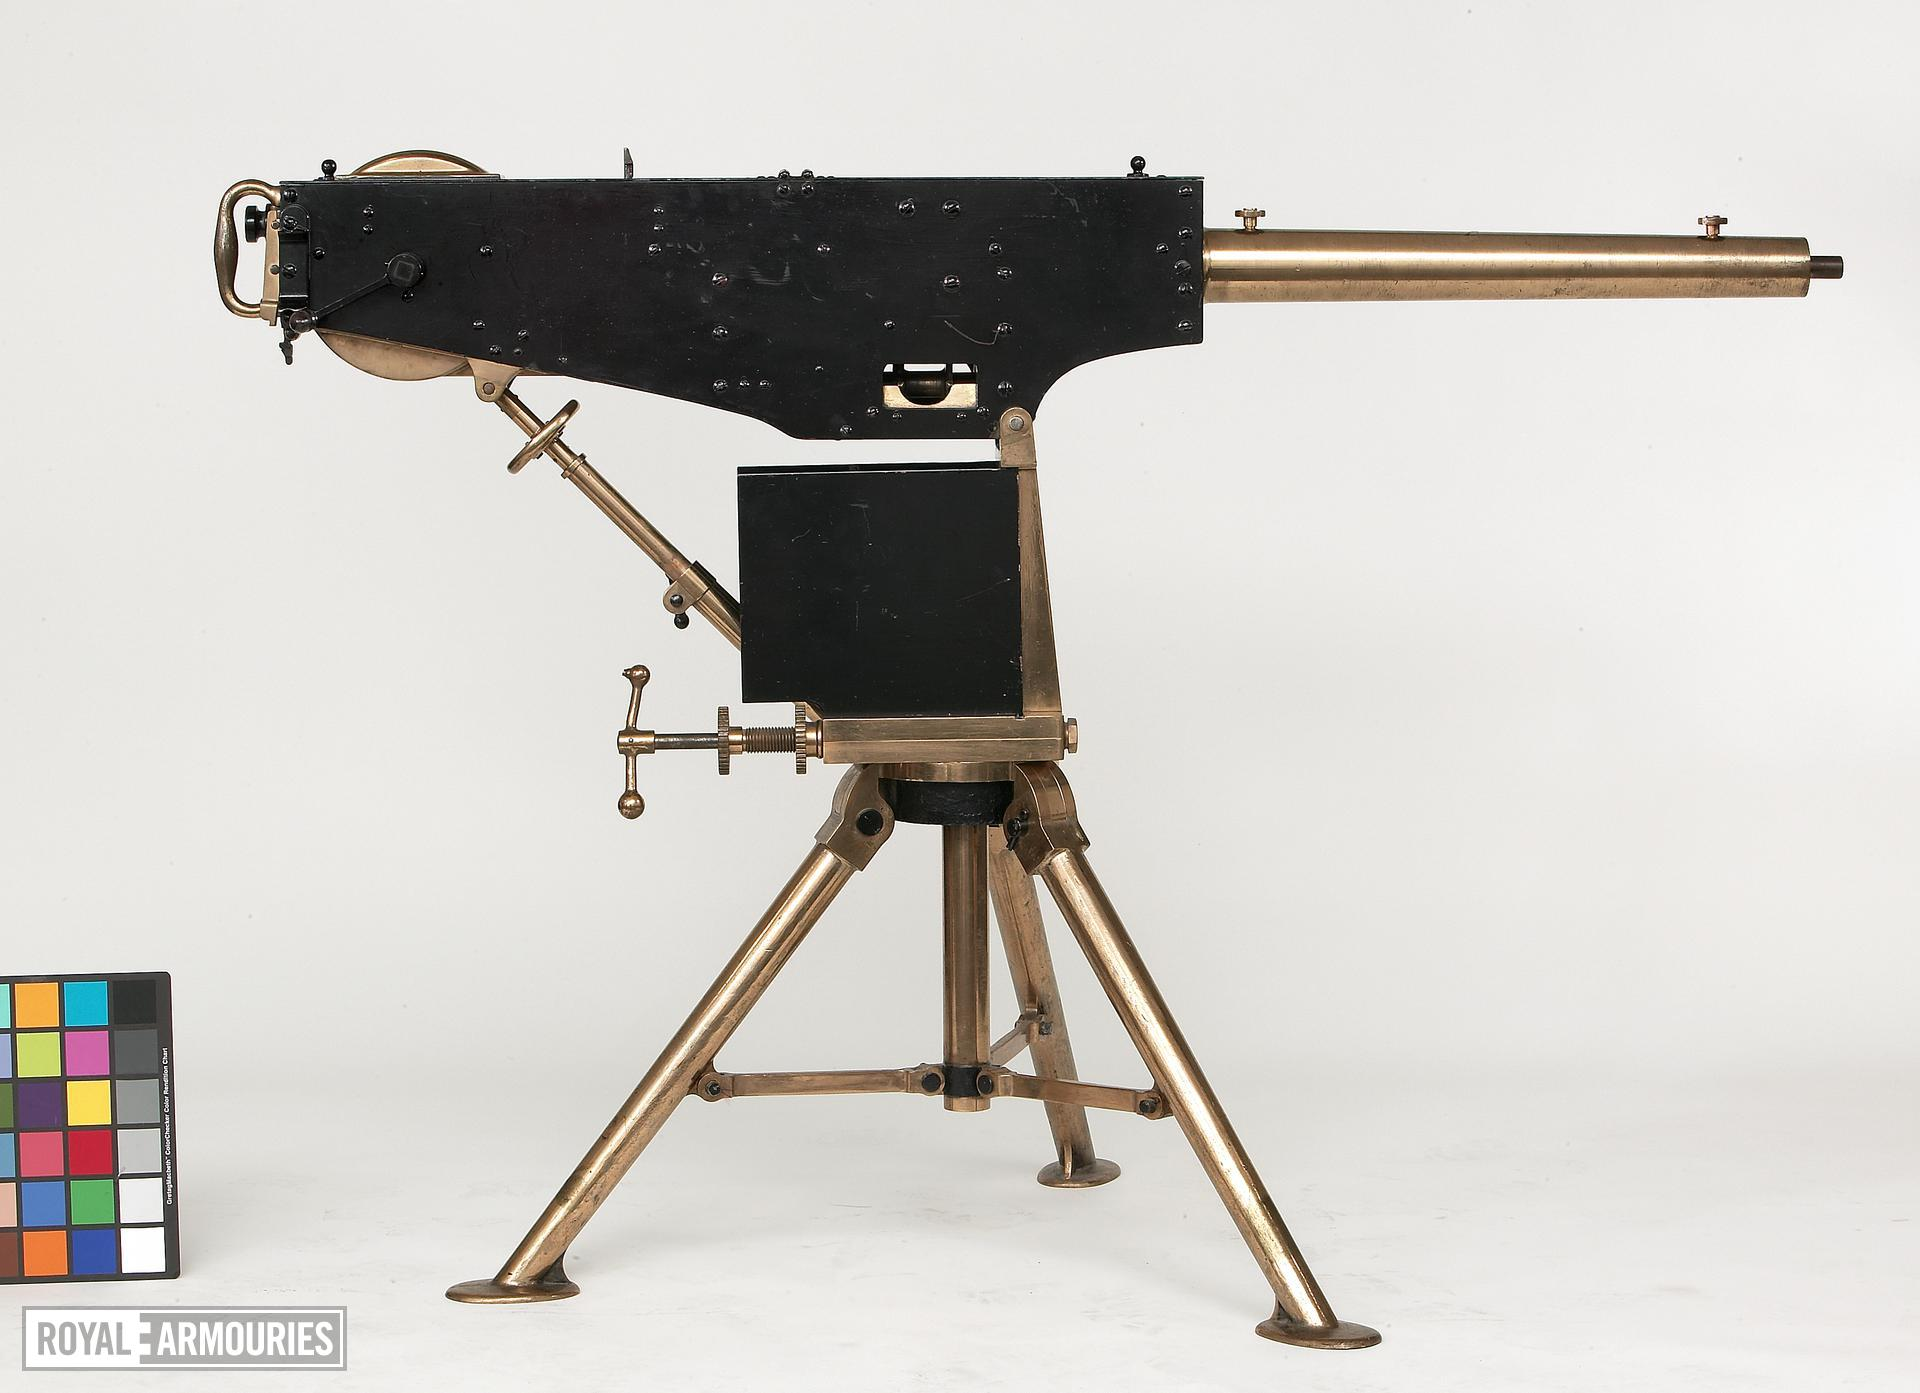 Centrefire automatic machine gun - Experimental Maxim